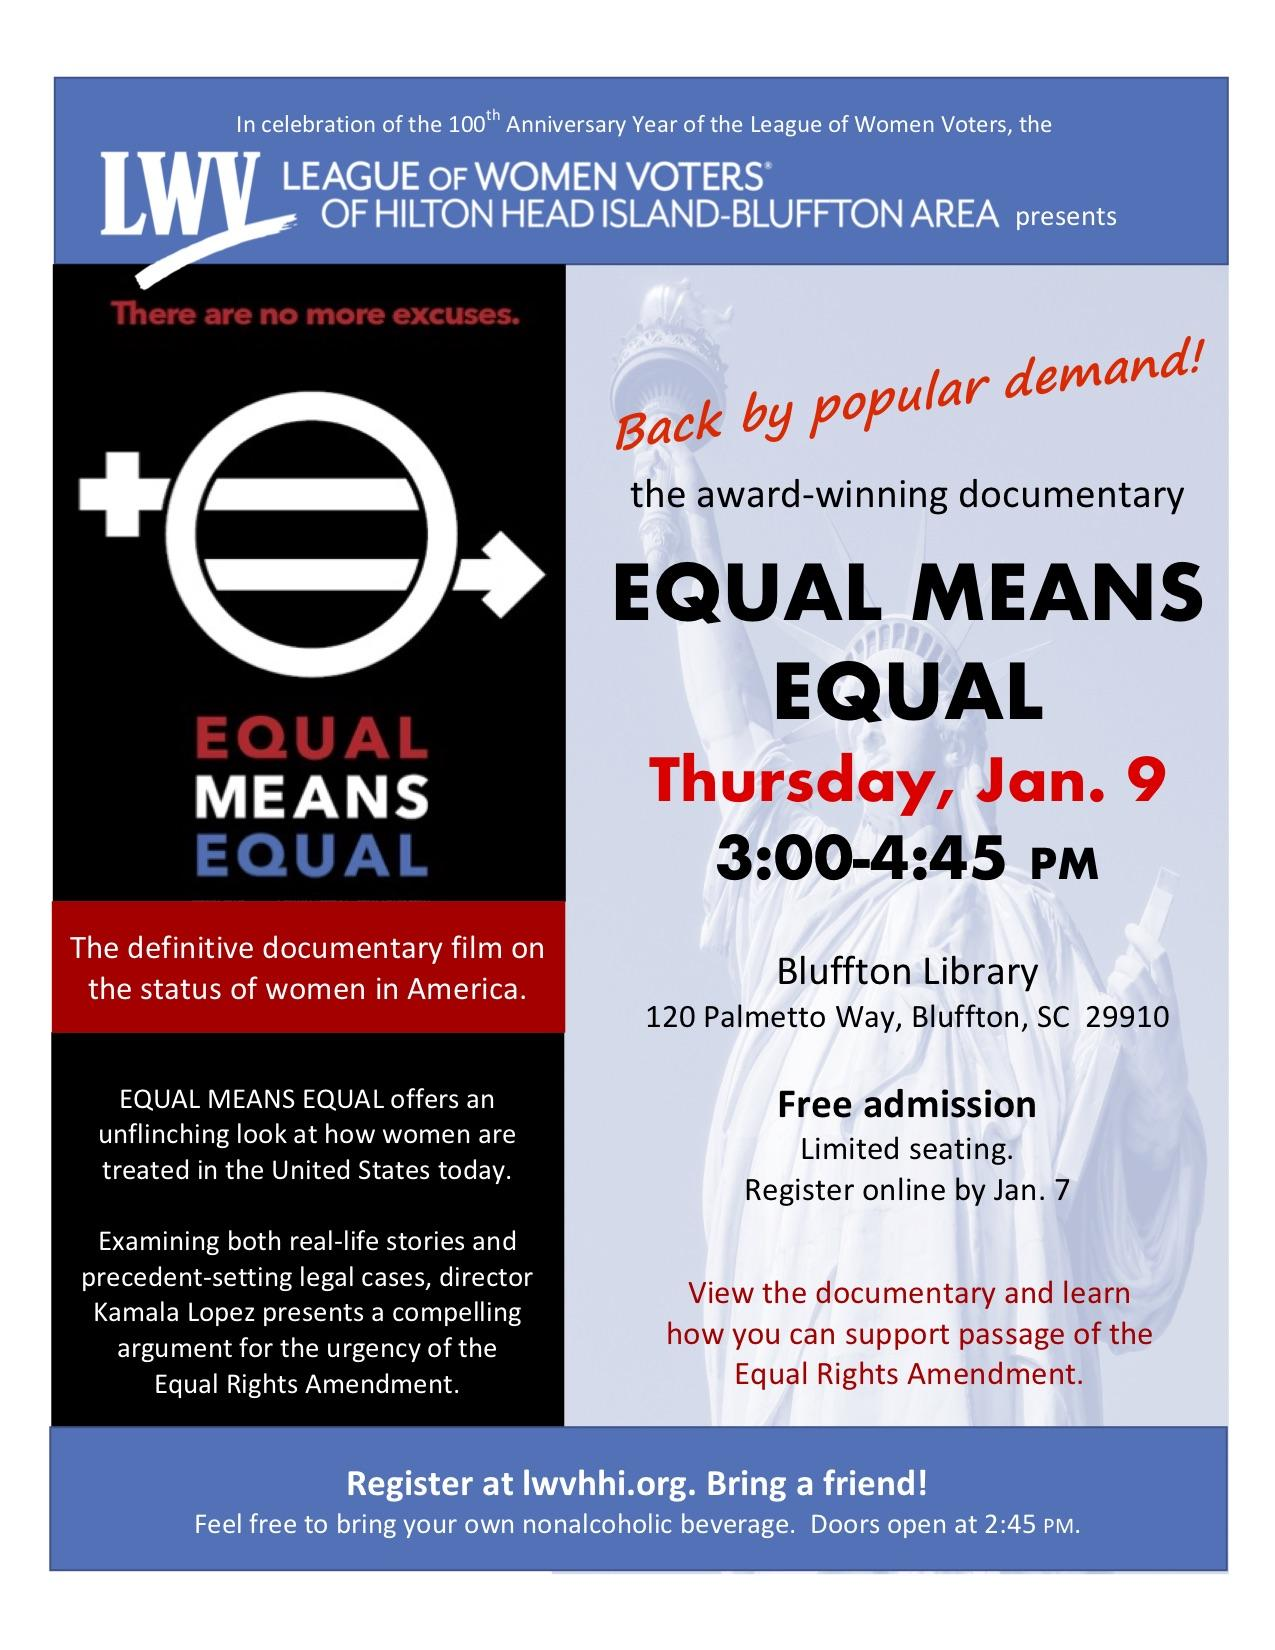 Jan. 9 Equal Means Equal documentary